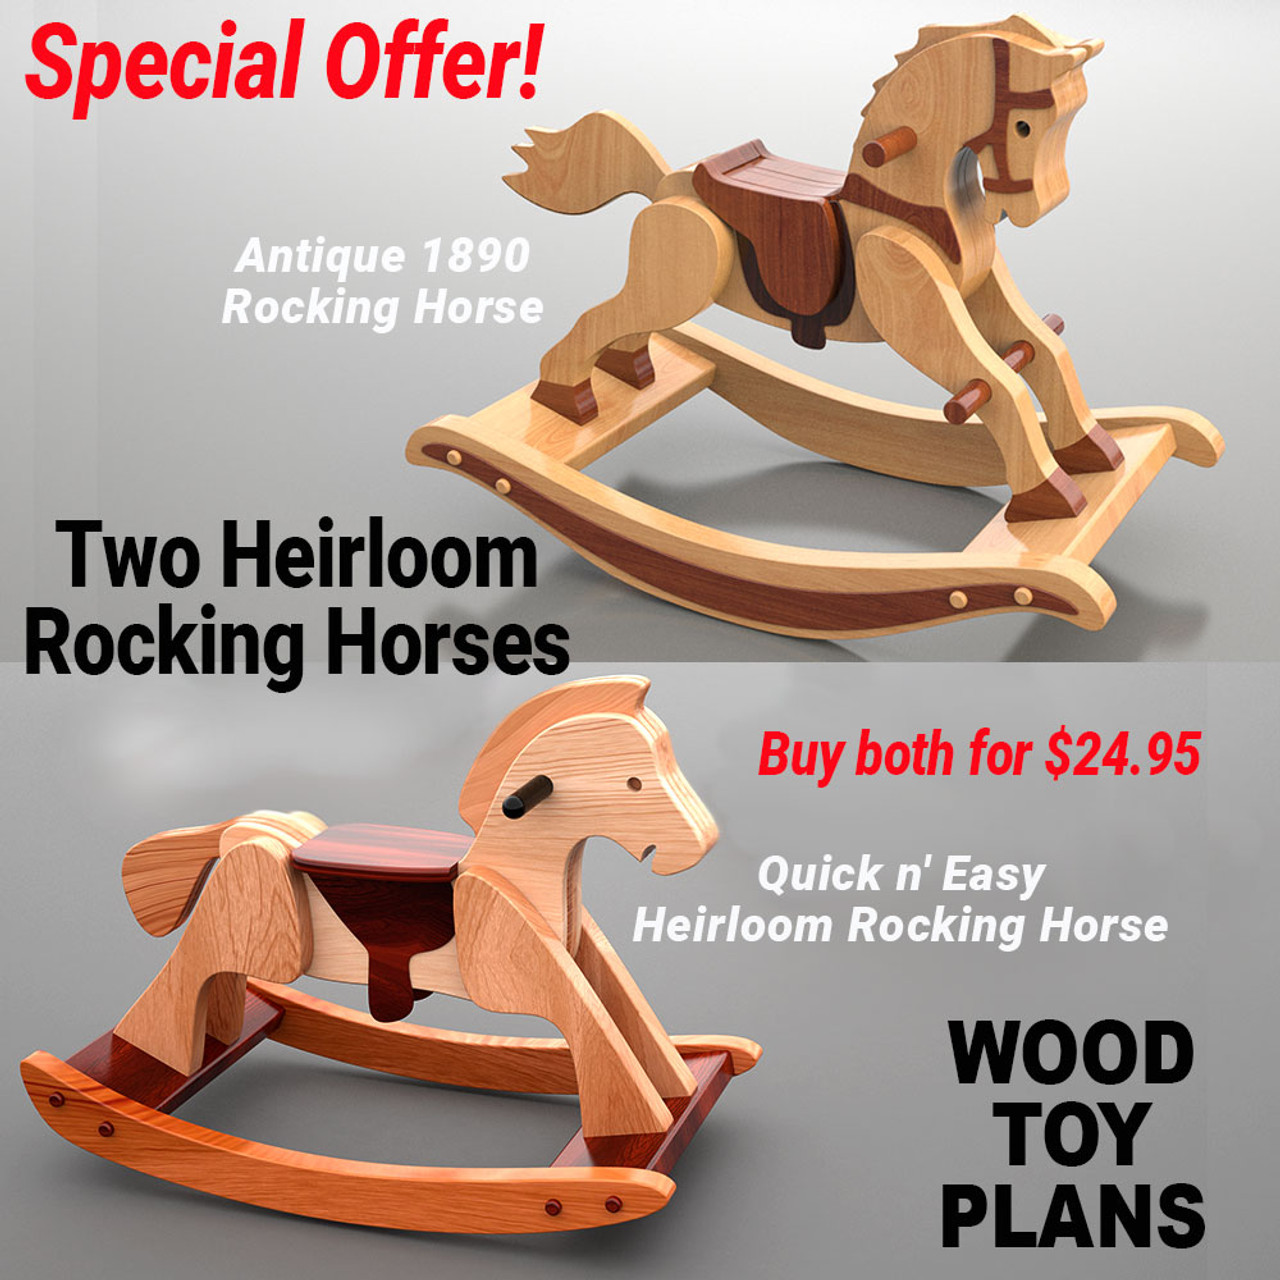 special offer! antique 1890 rocking horse + quick n' easy heirloom rocking  horse wood toy plans (2 pdf downloads)